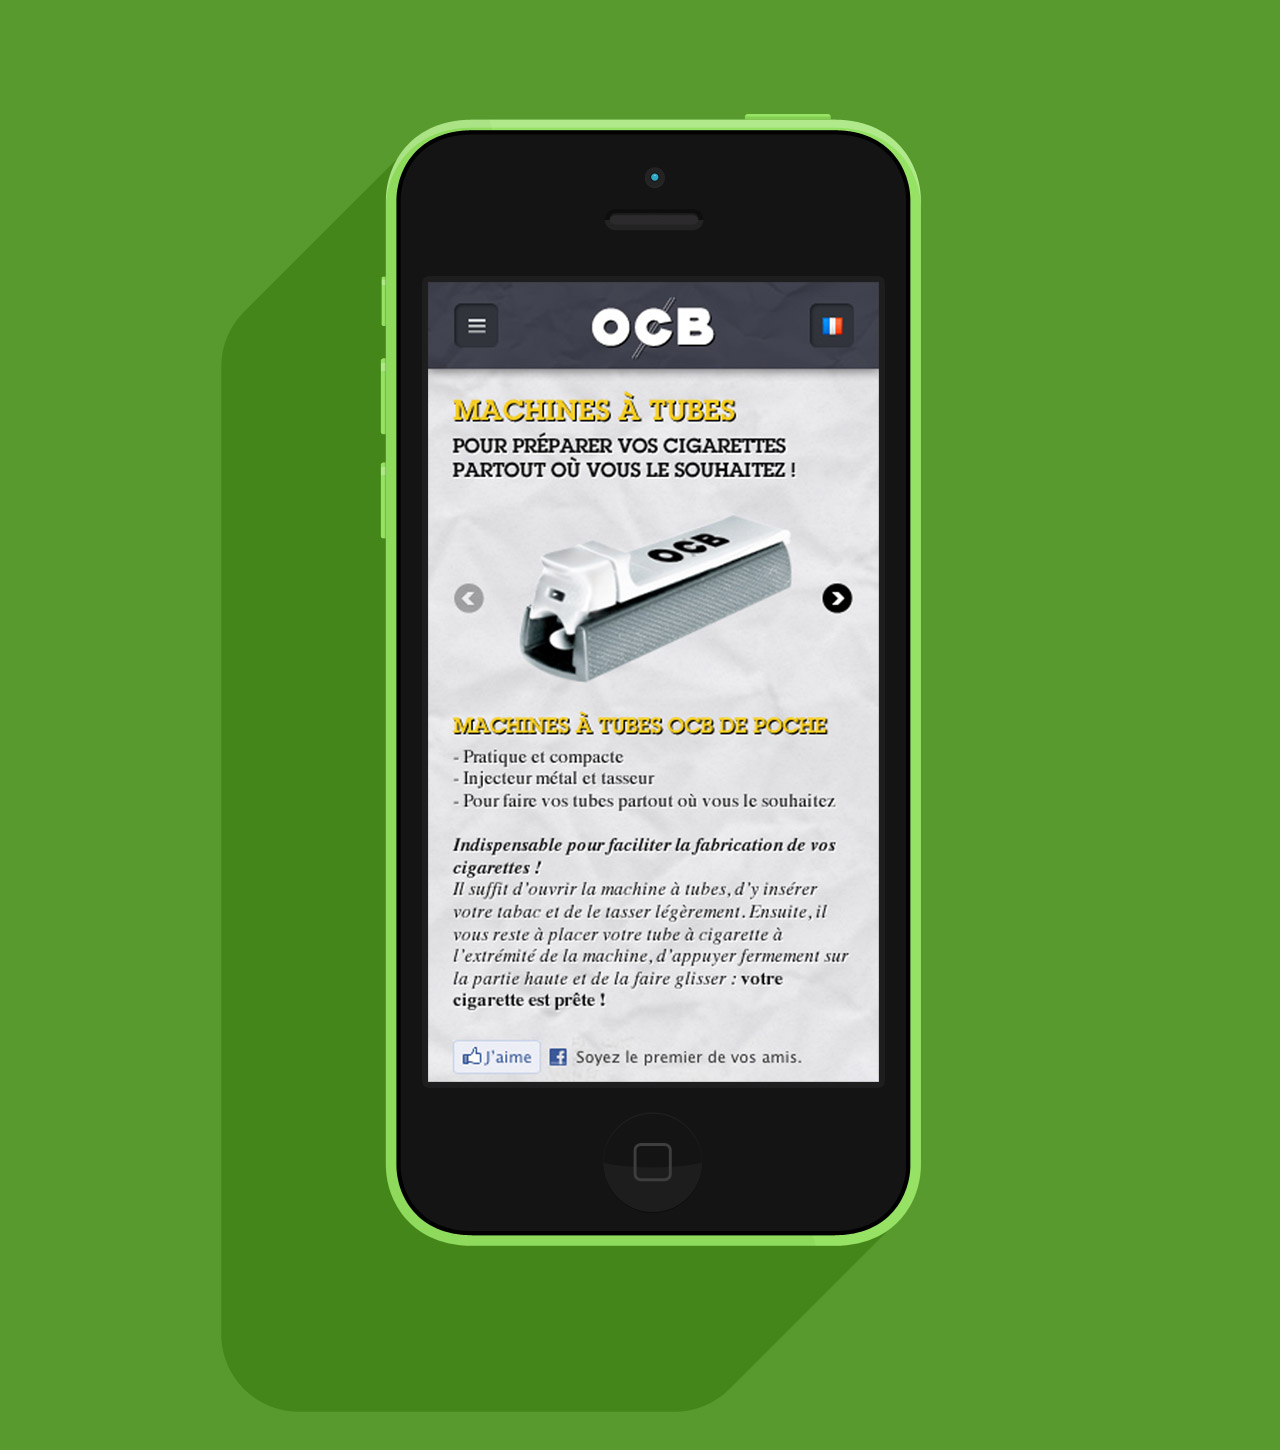 ocb-site-mobile-site-internet-ocb-accessoires-focus-creation-communication-caconcept-alexis-cretin-graphiste